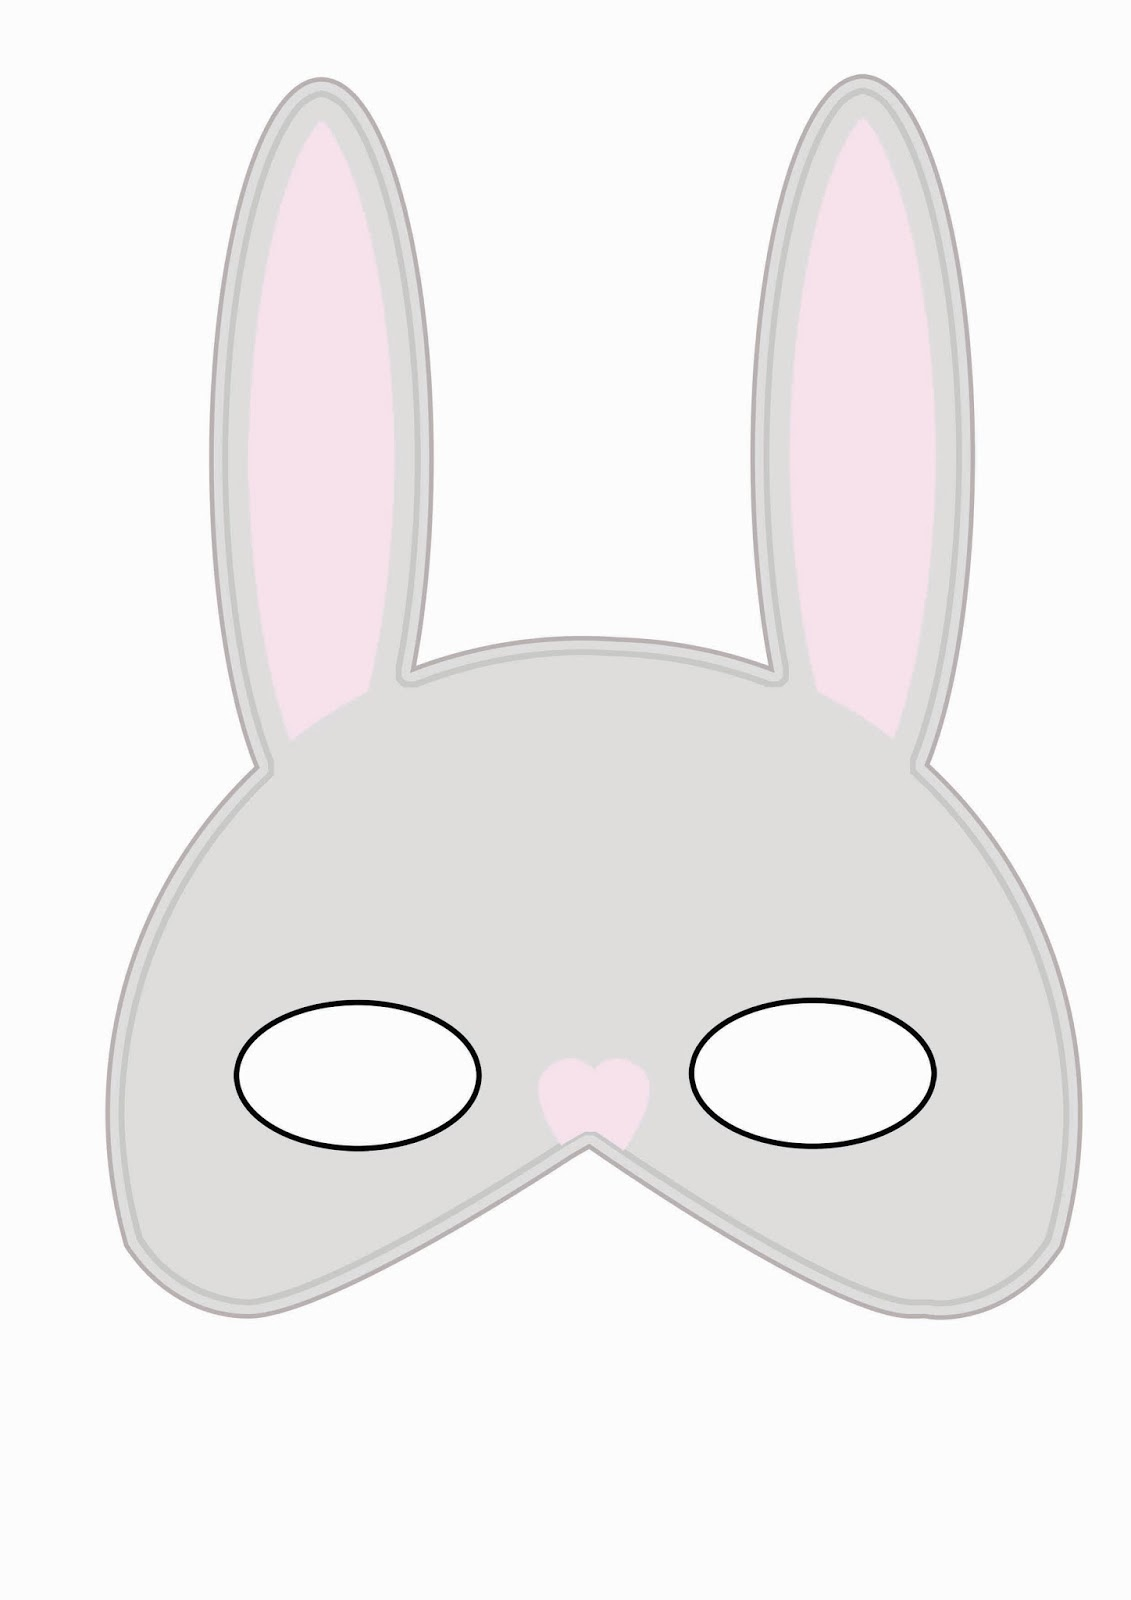 Dynamic image in printable bunny mask